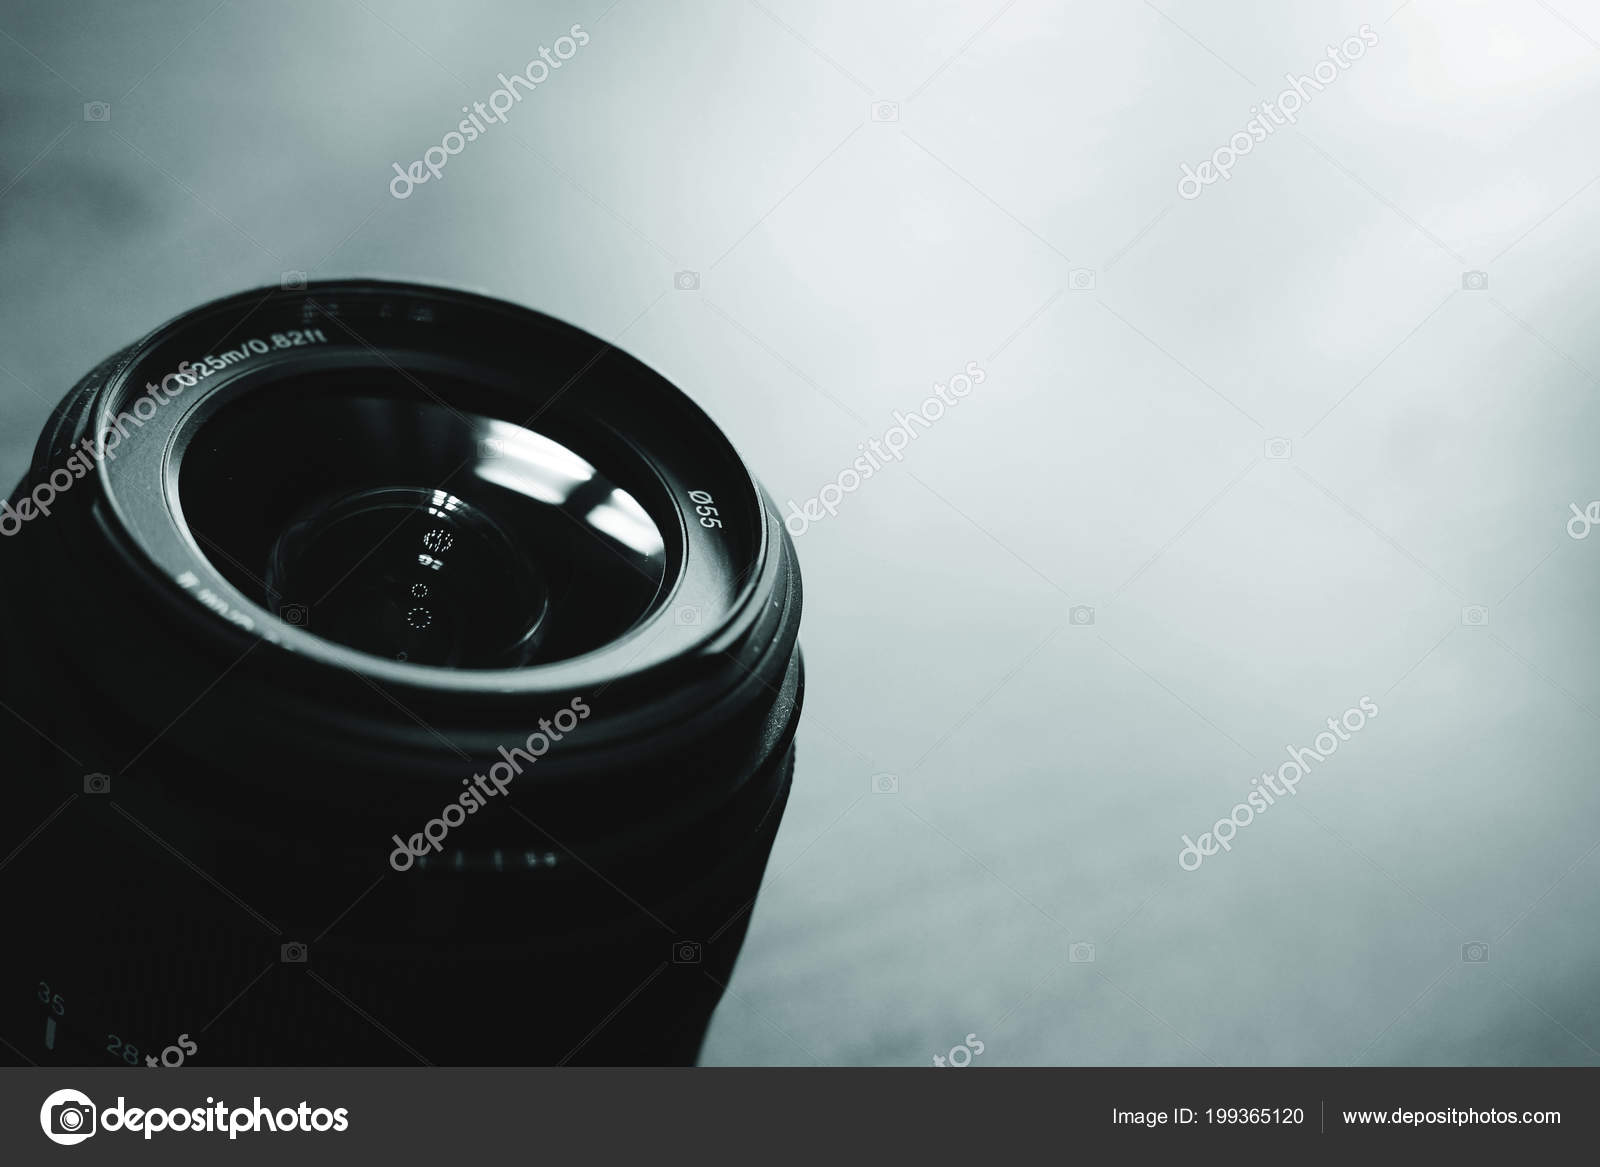 Photos Camera Lens Wallpaper Best Camera Lens Glass Photo Hobby Photographer Focus Closeup Macro Stock Photo C Cerberus152 199365120